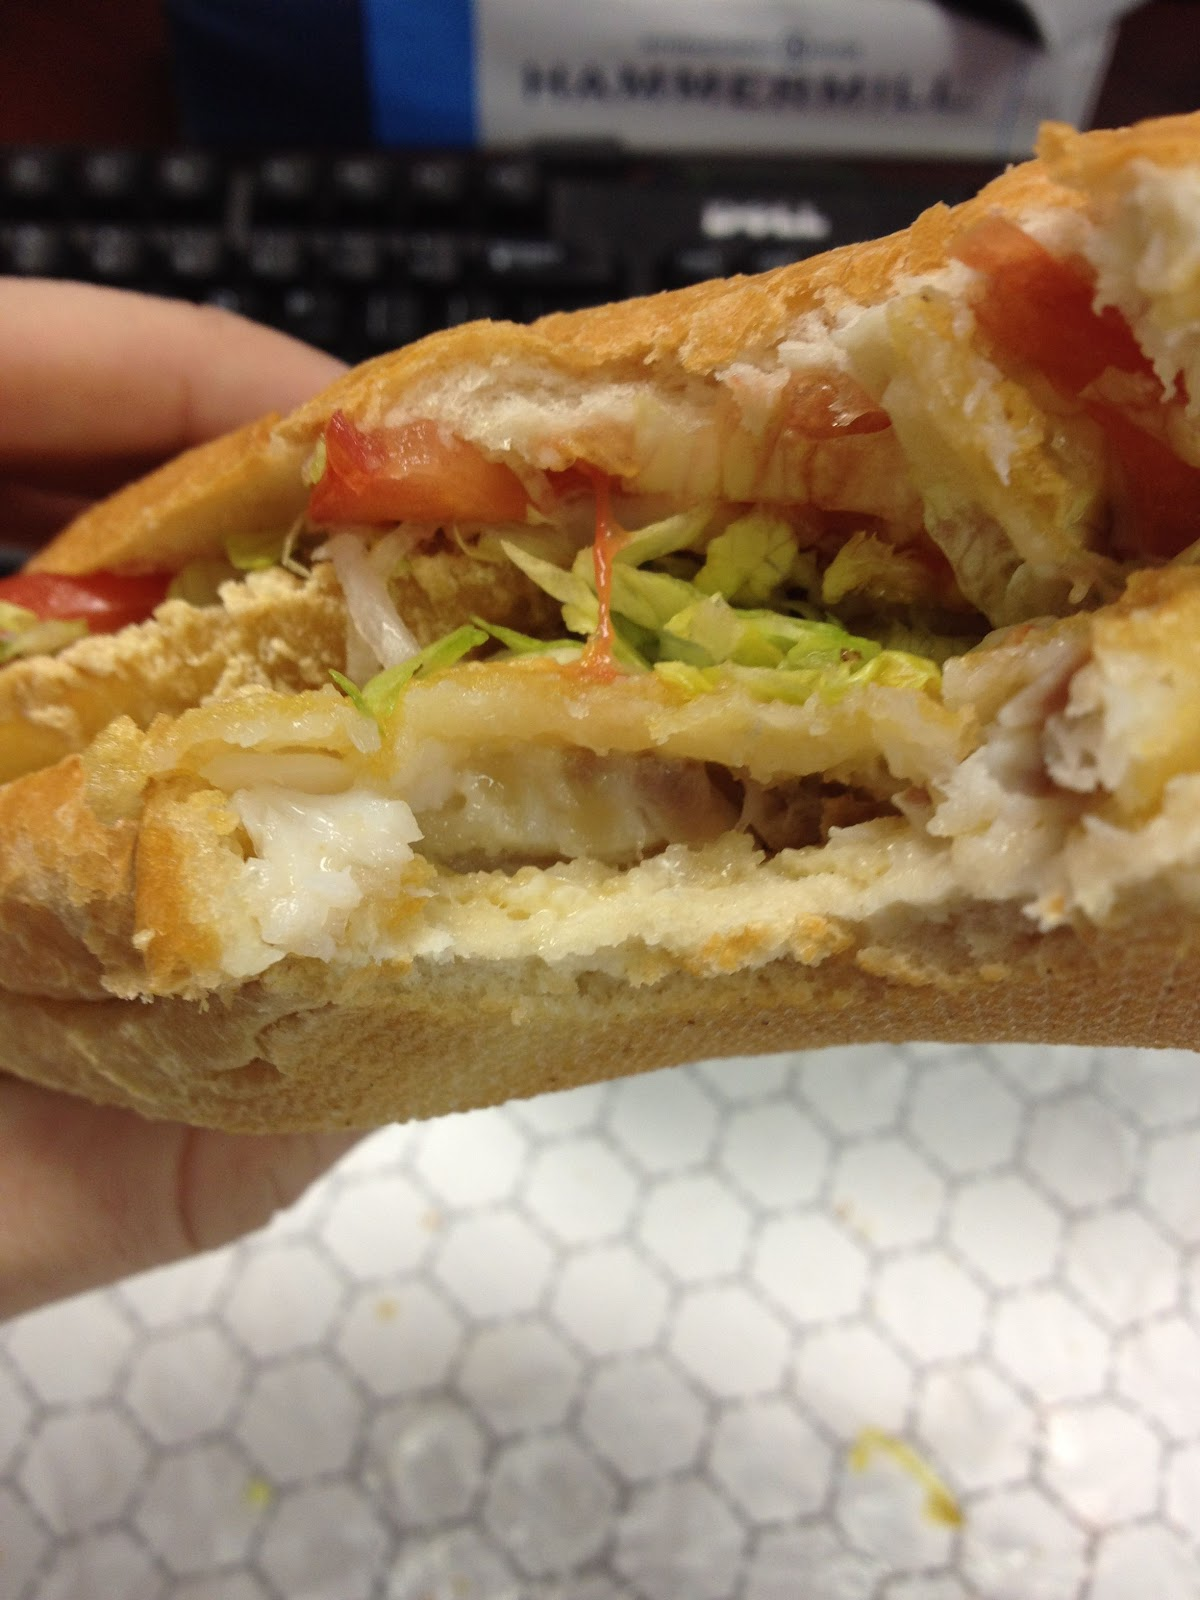 Fast food geek sheetz fish sandwich review for Fish sandwich fast food